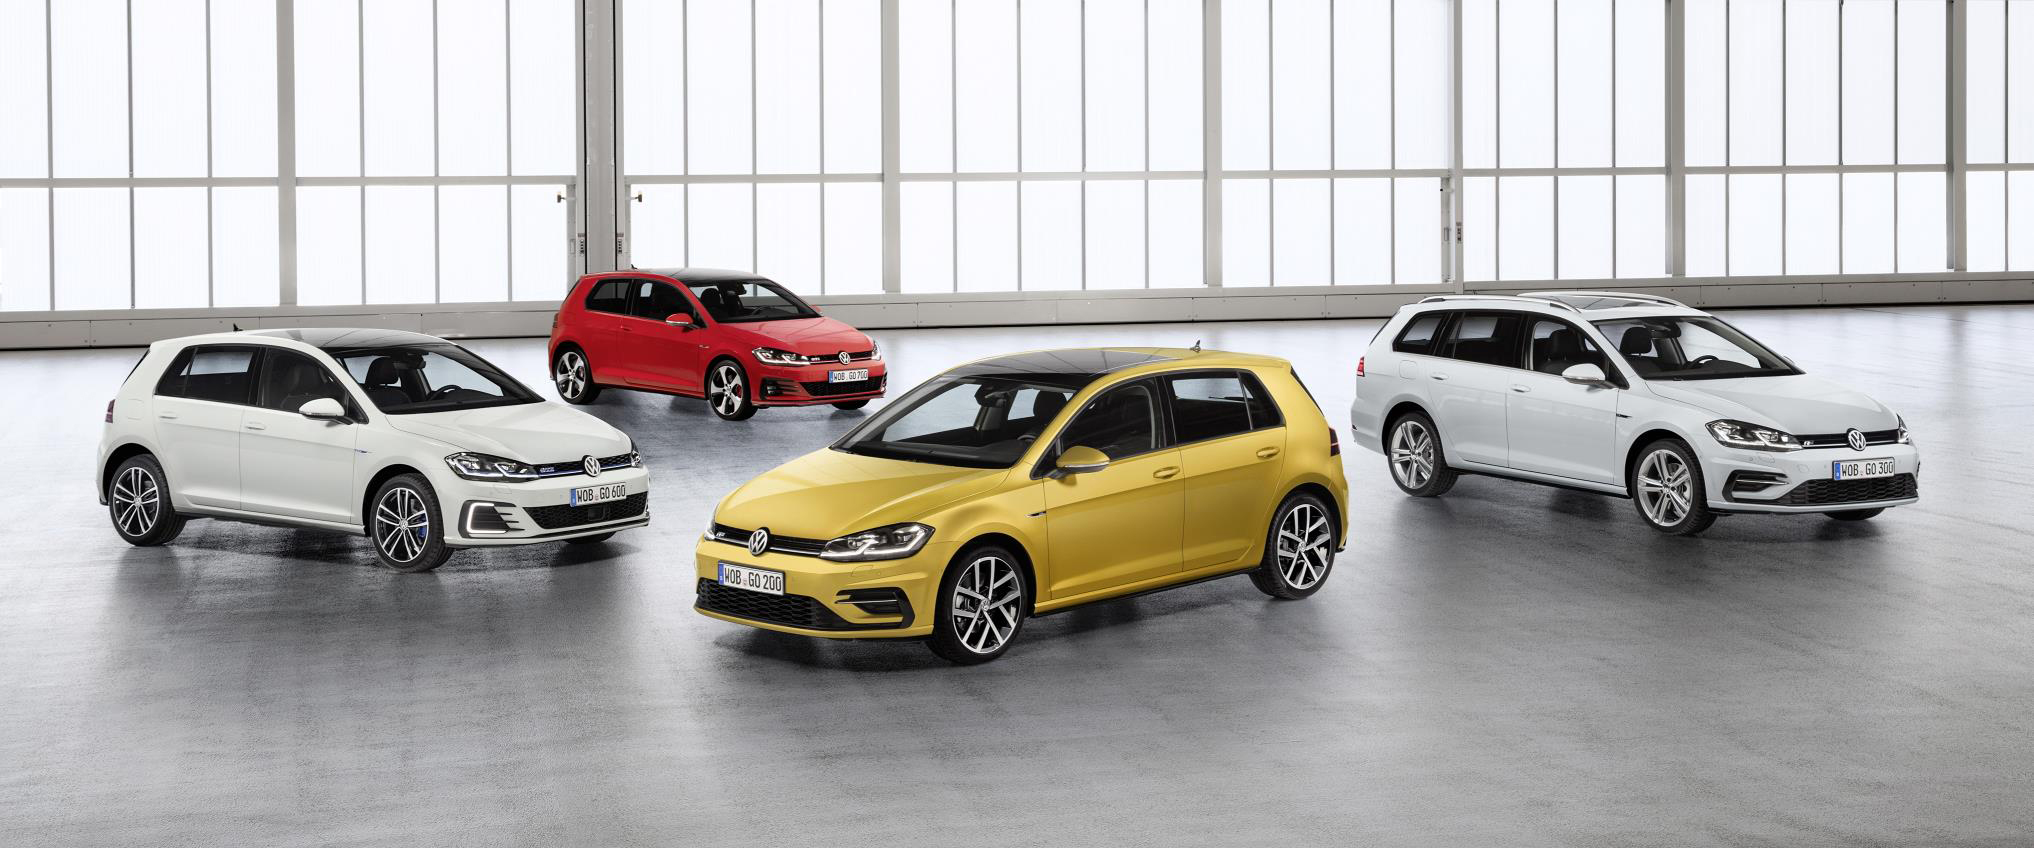 new VW Golf 2017